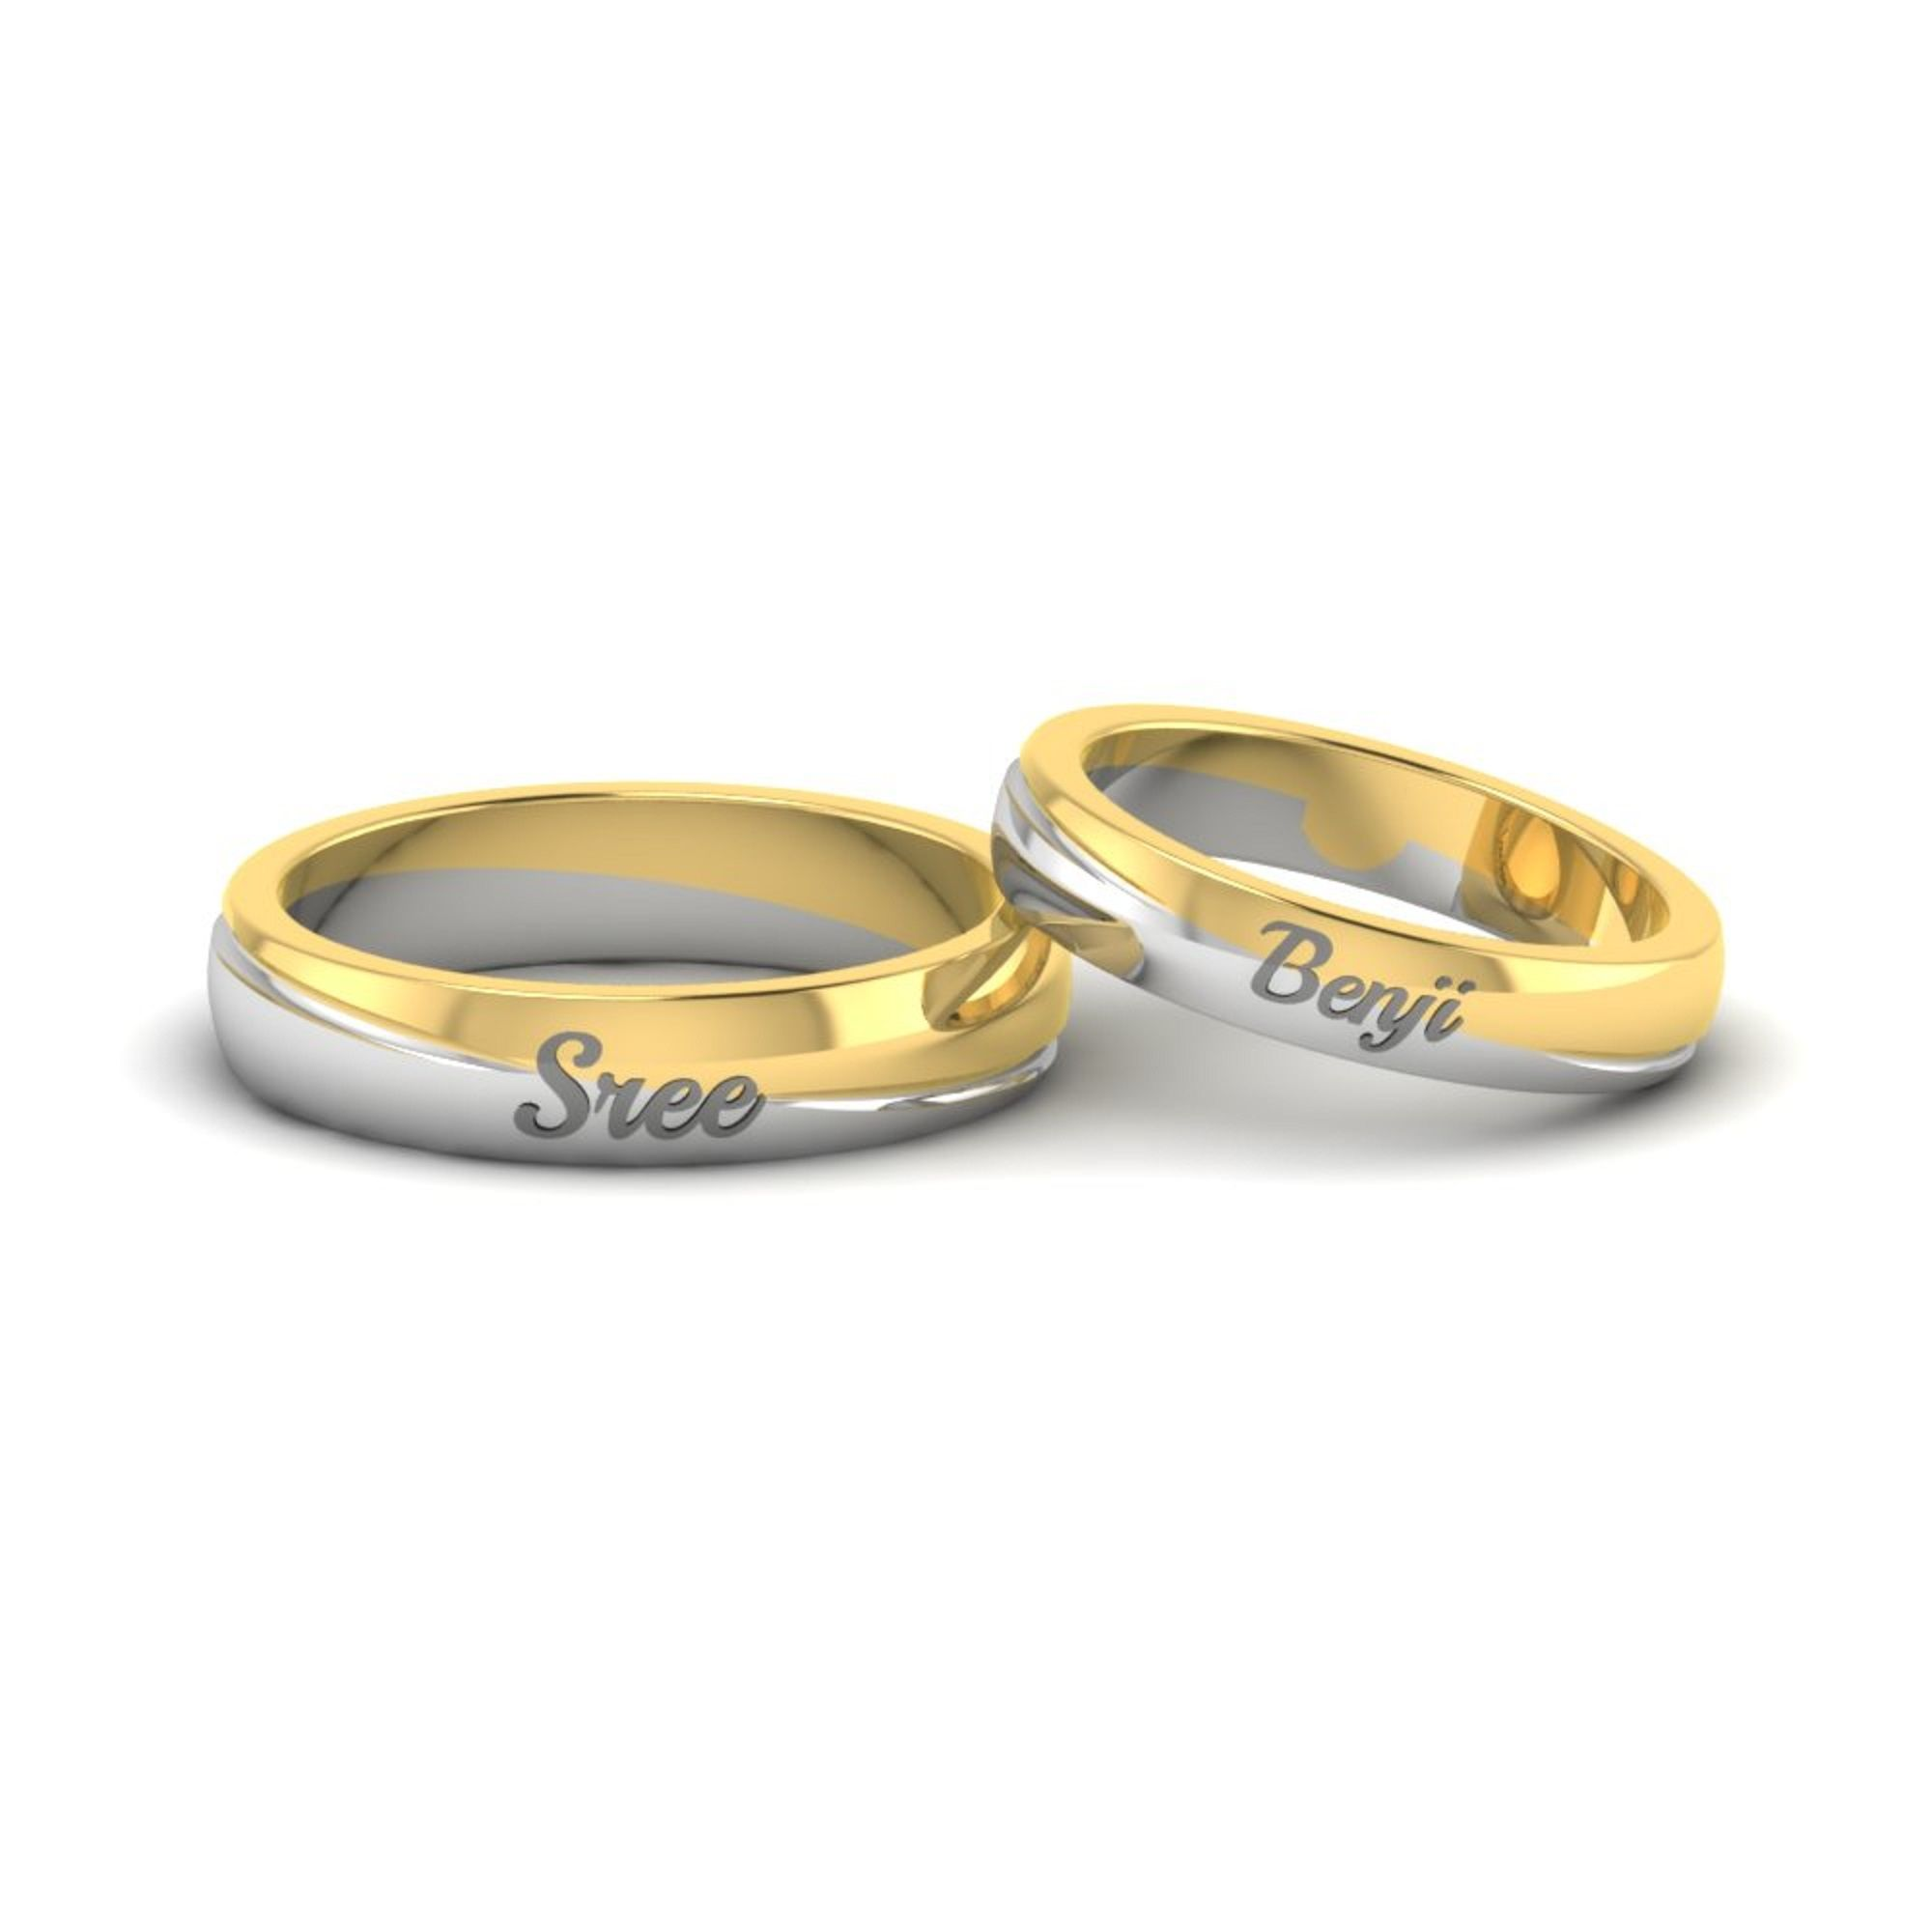 Wedding Ring Designs For Couple Couple Wedding Rings Wedding Rings Sets Gold Engagement Rings Couple